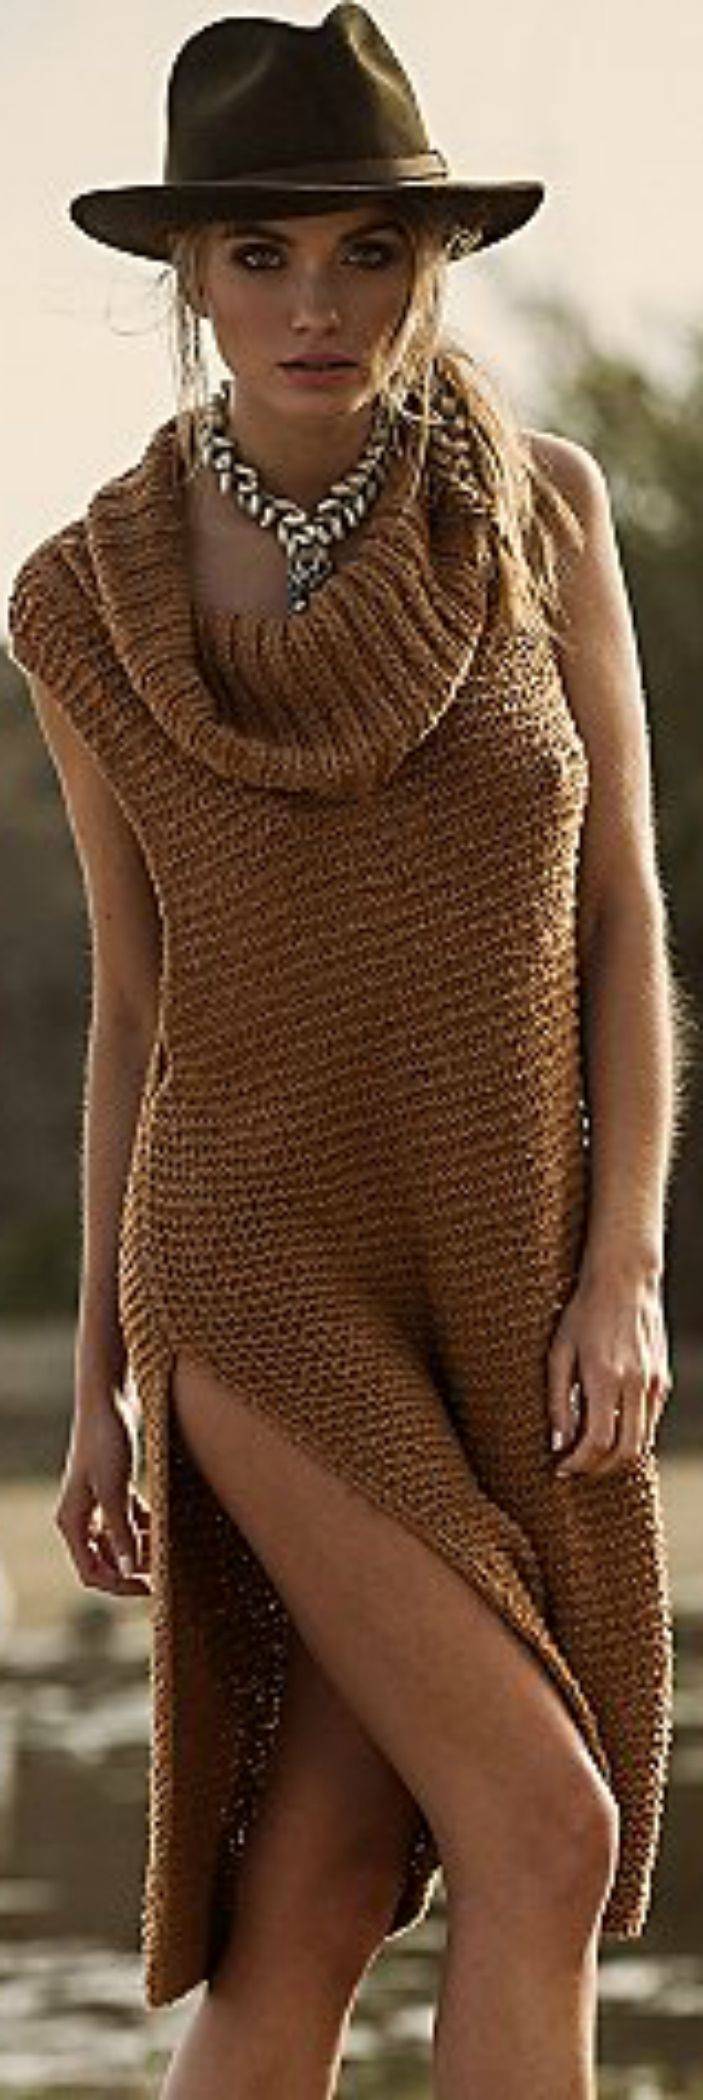 Love the oversized sweaters. For more follow www.pinterest.com/ninayay and stay positively #pinspired #pinspire @ninayay